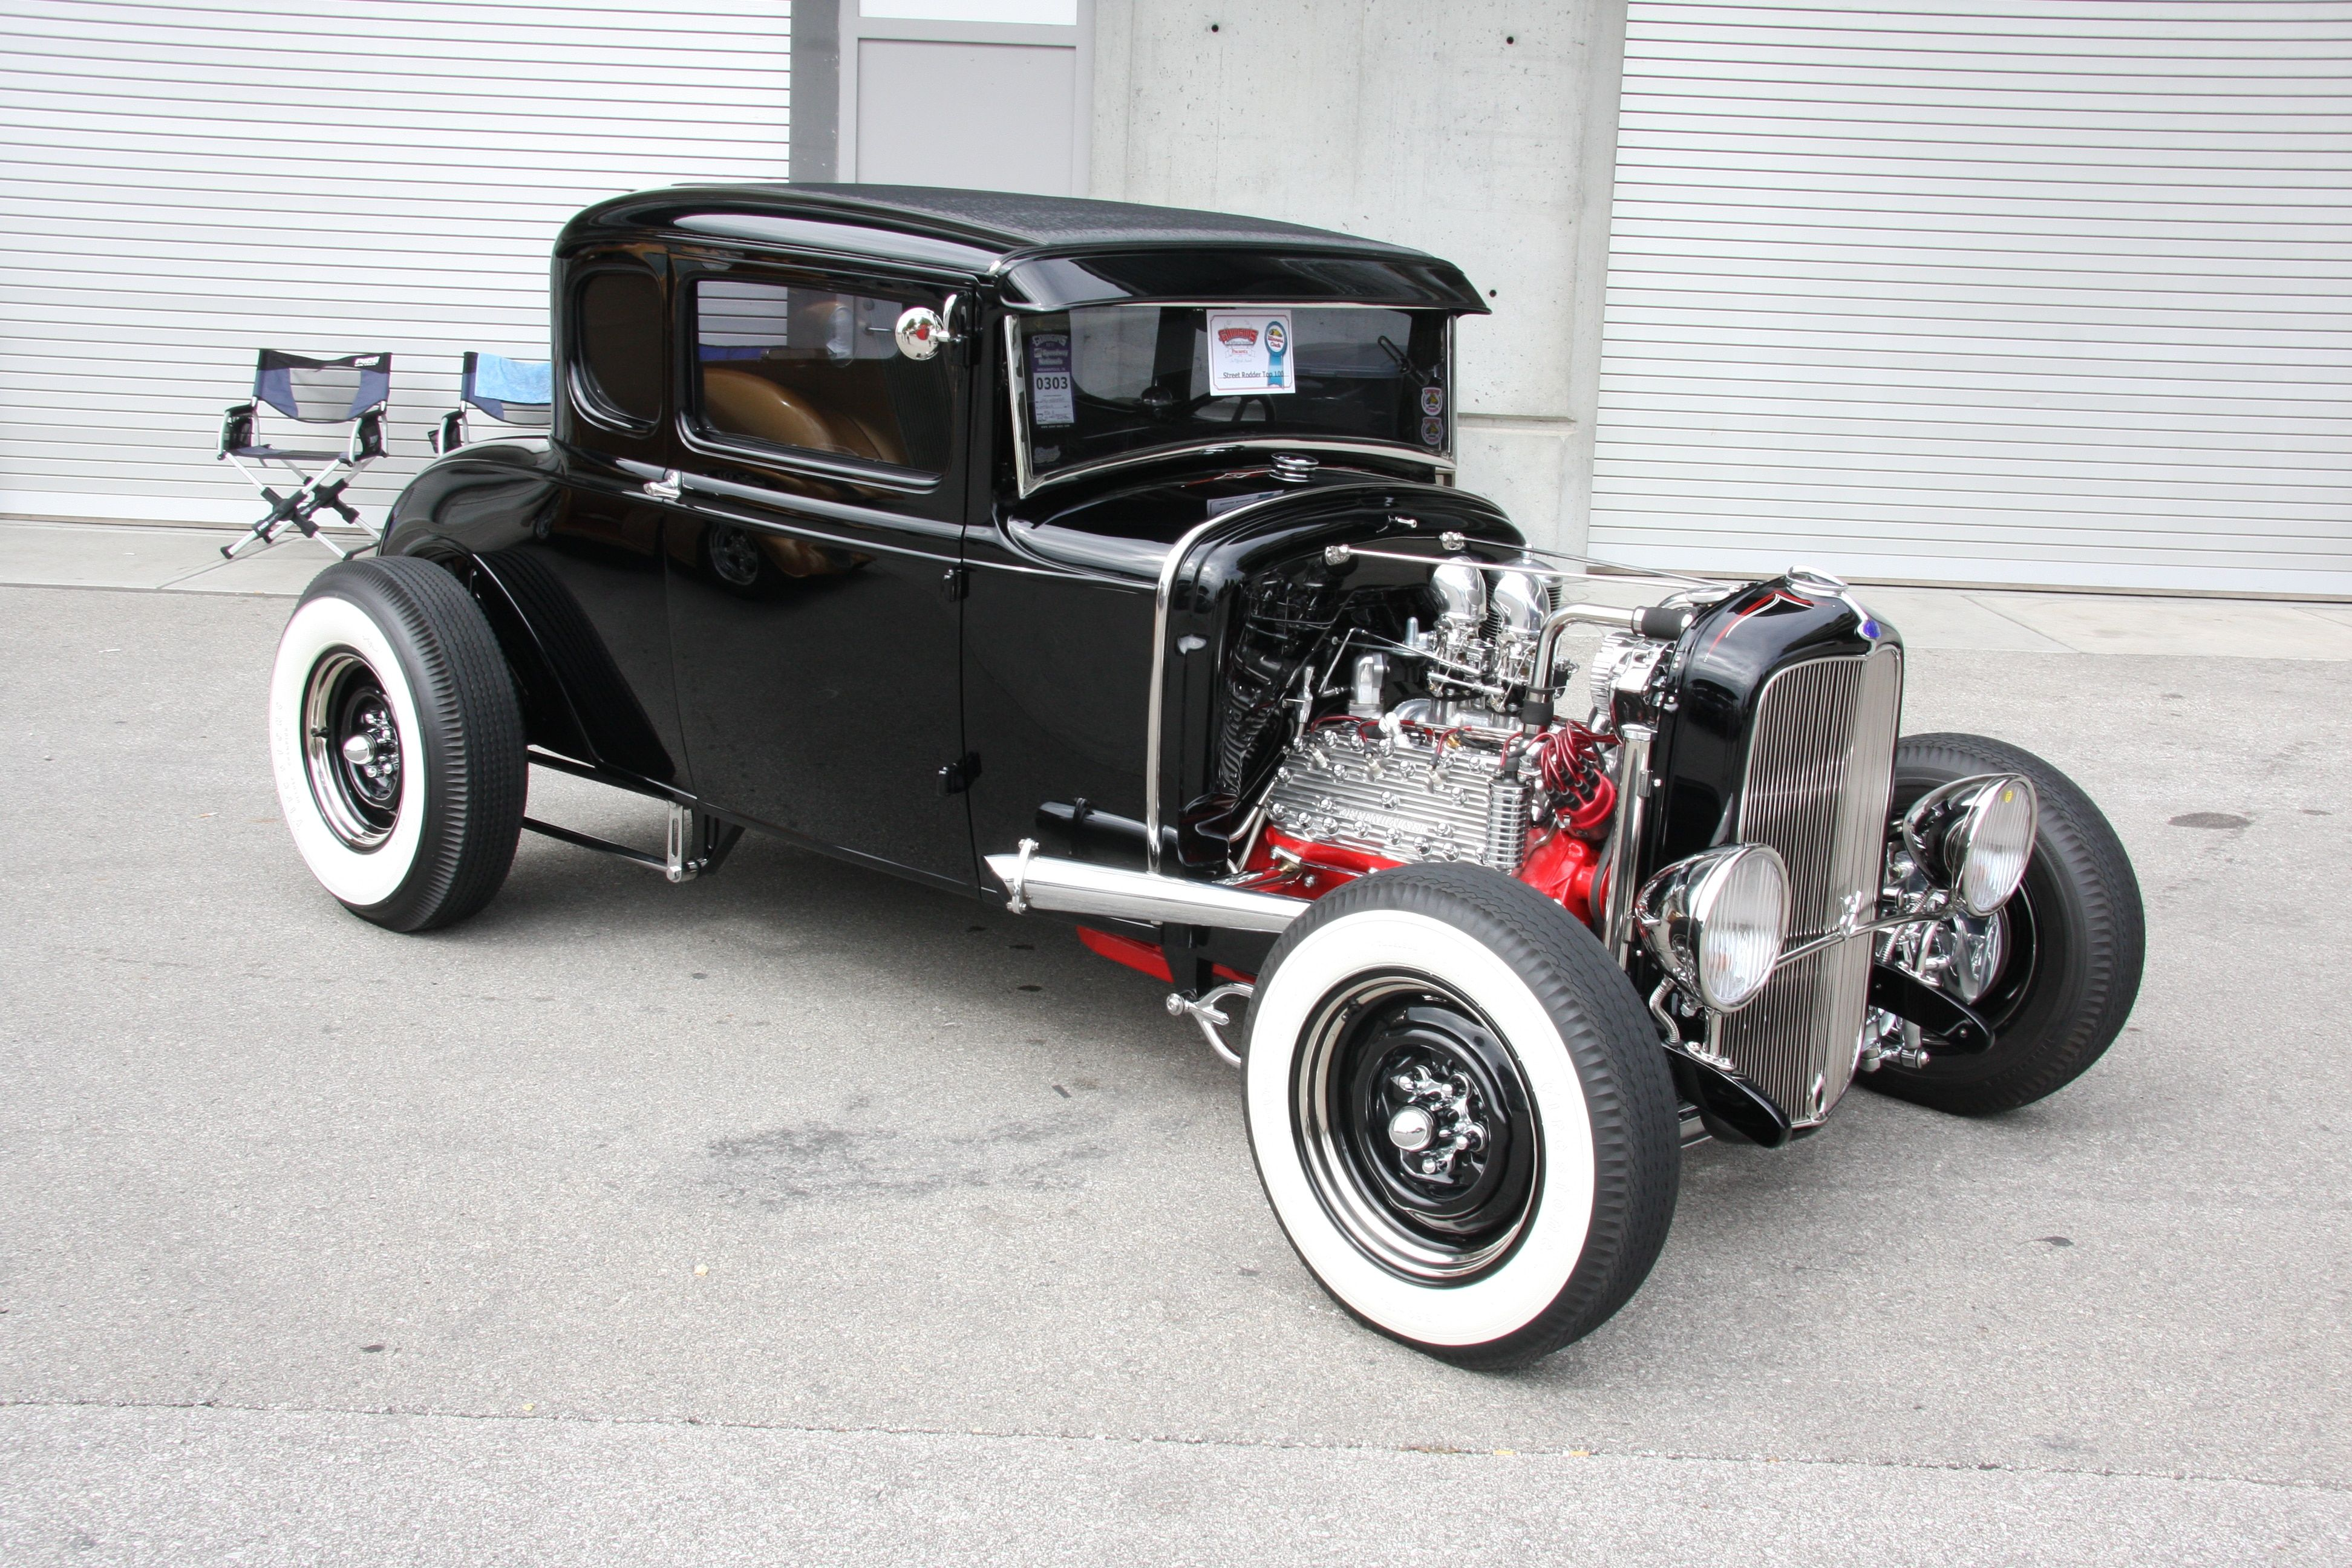 Larry Terpstra 1930 Model A coupe - Hot Rod Network | Hot Rods ...